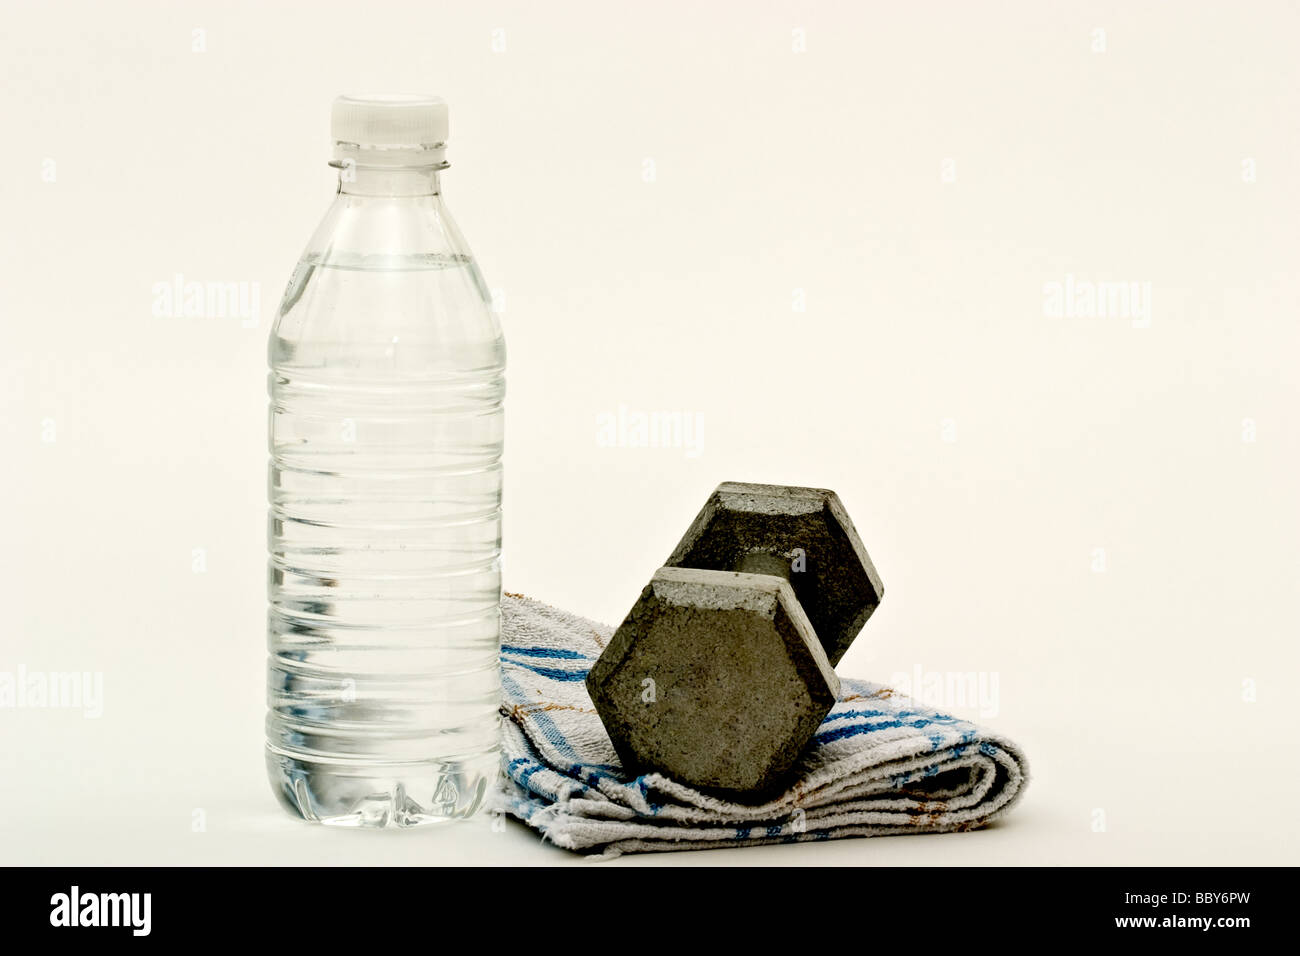 A dumbbell on a sweat towel next to a bottle of water - Stock Image